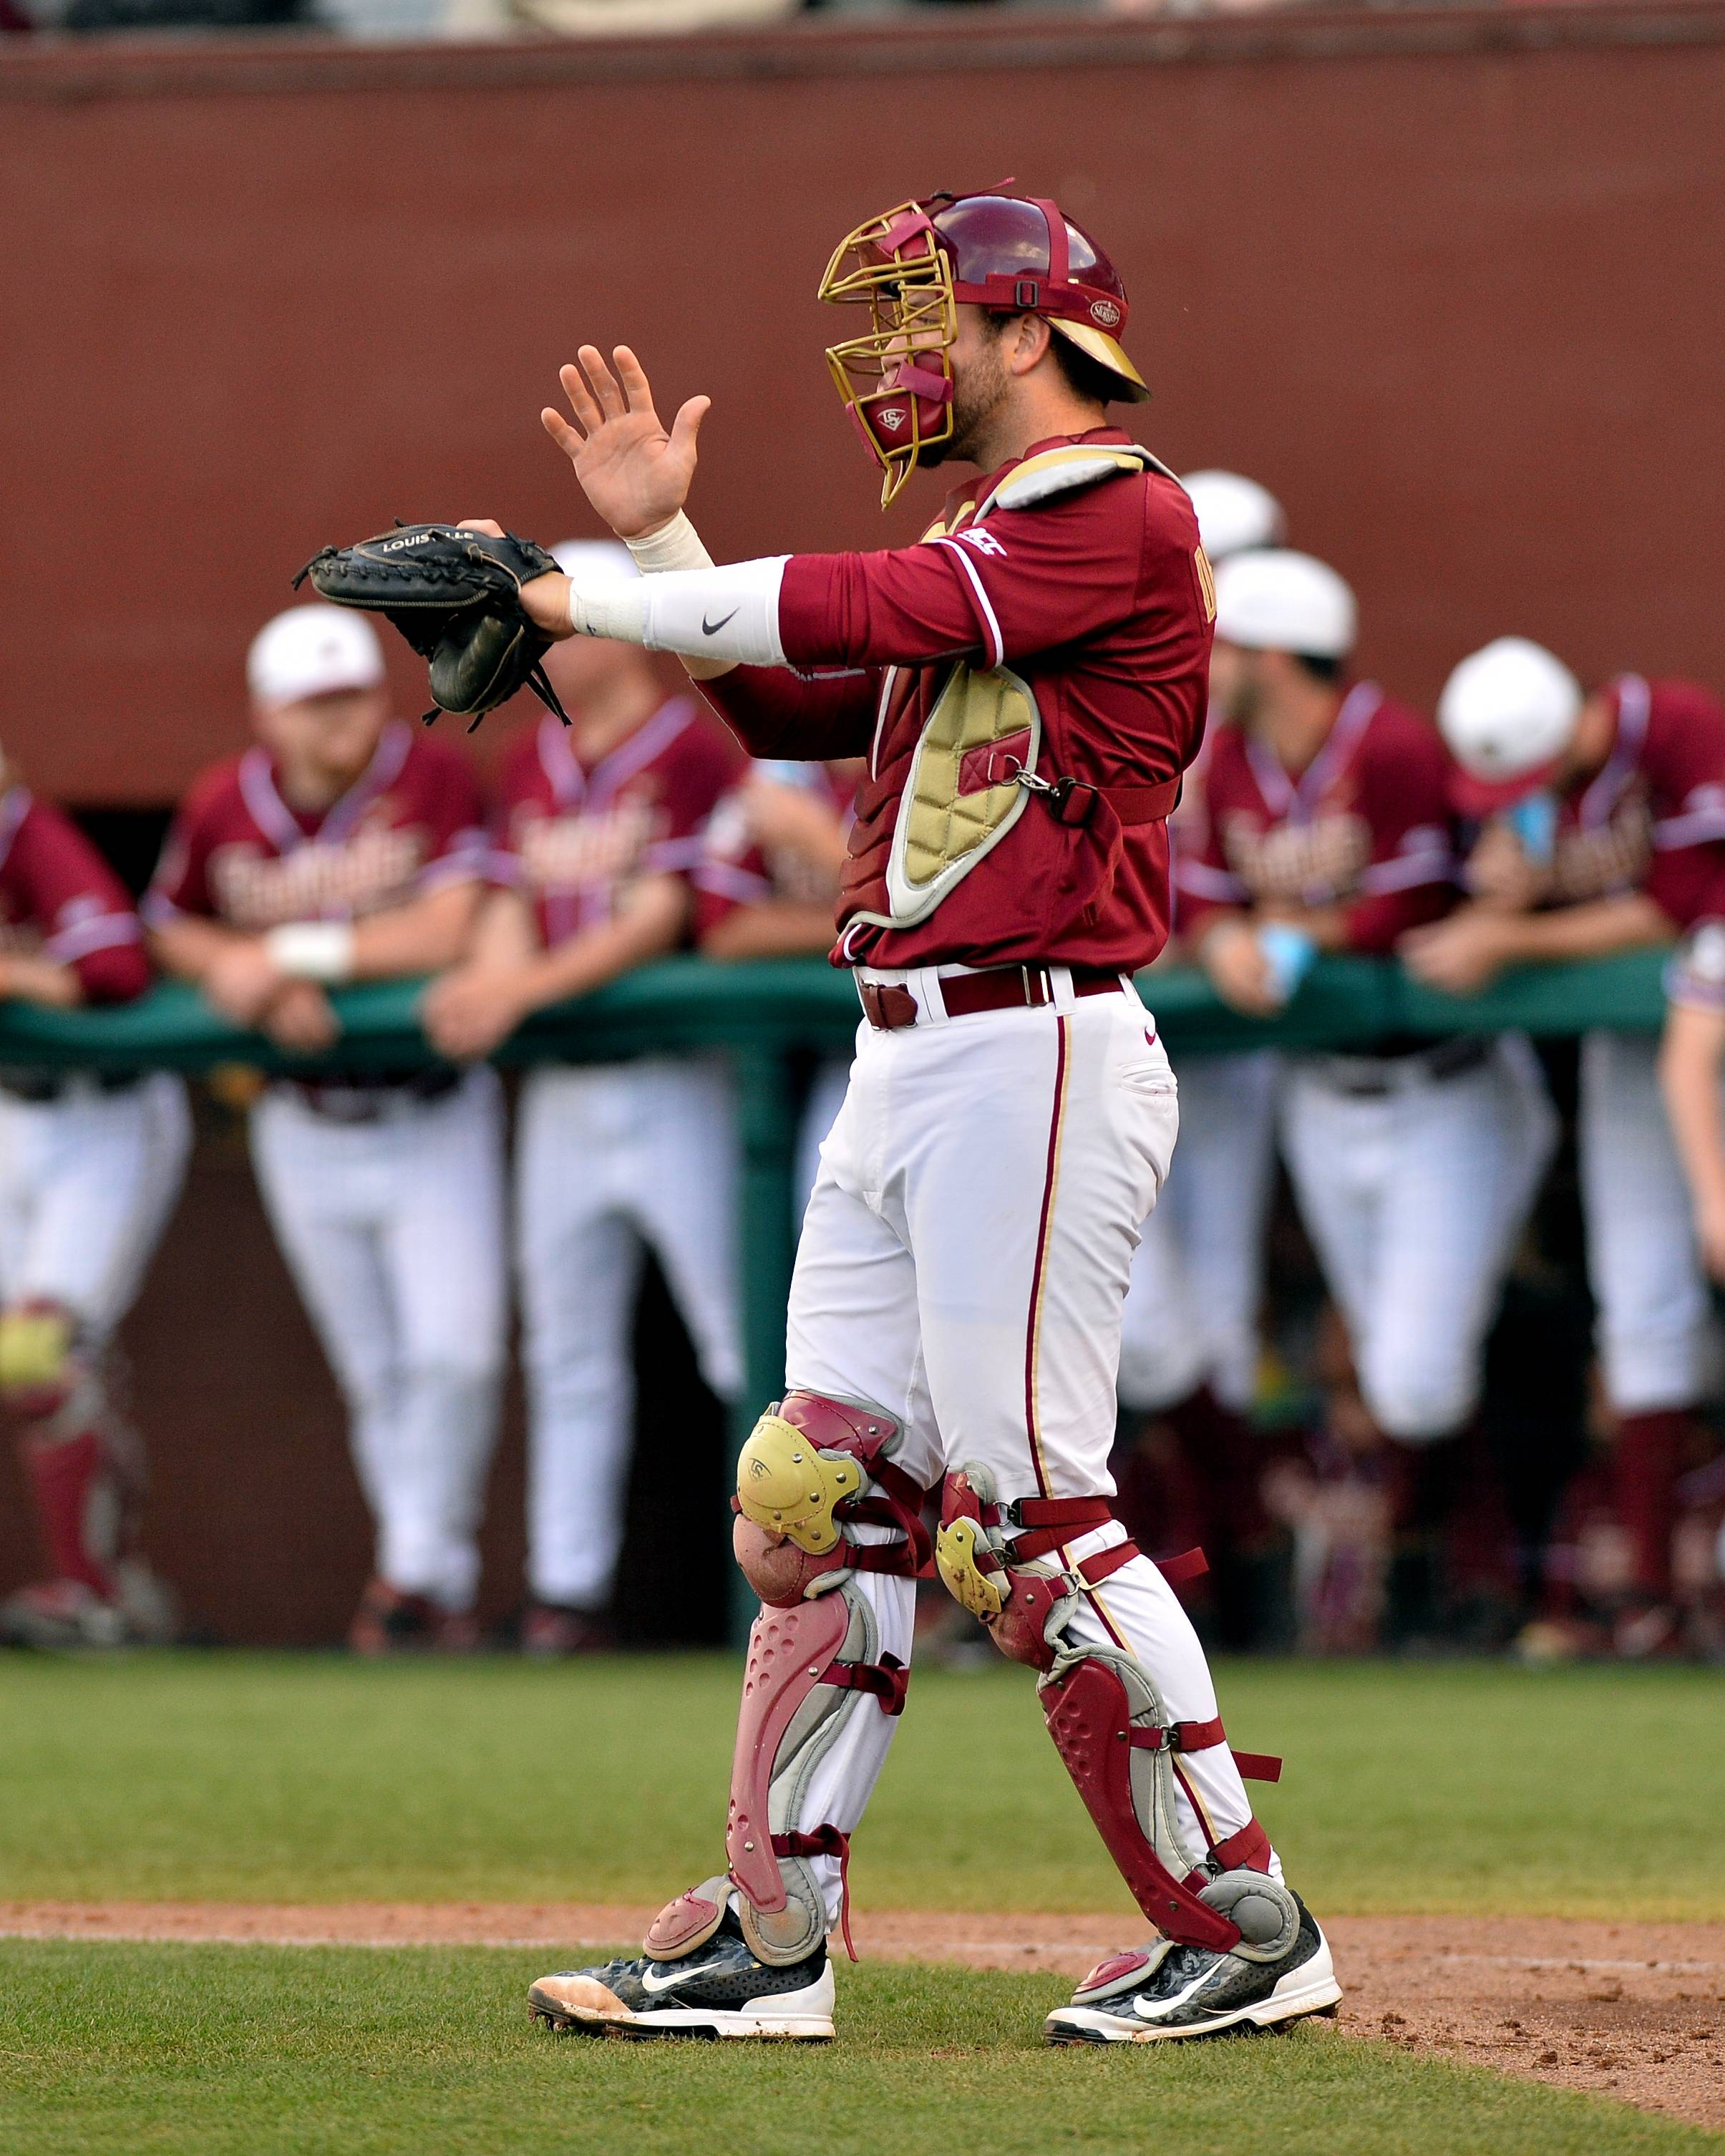 Florida State vs UCF – Game 1